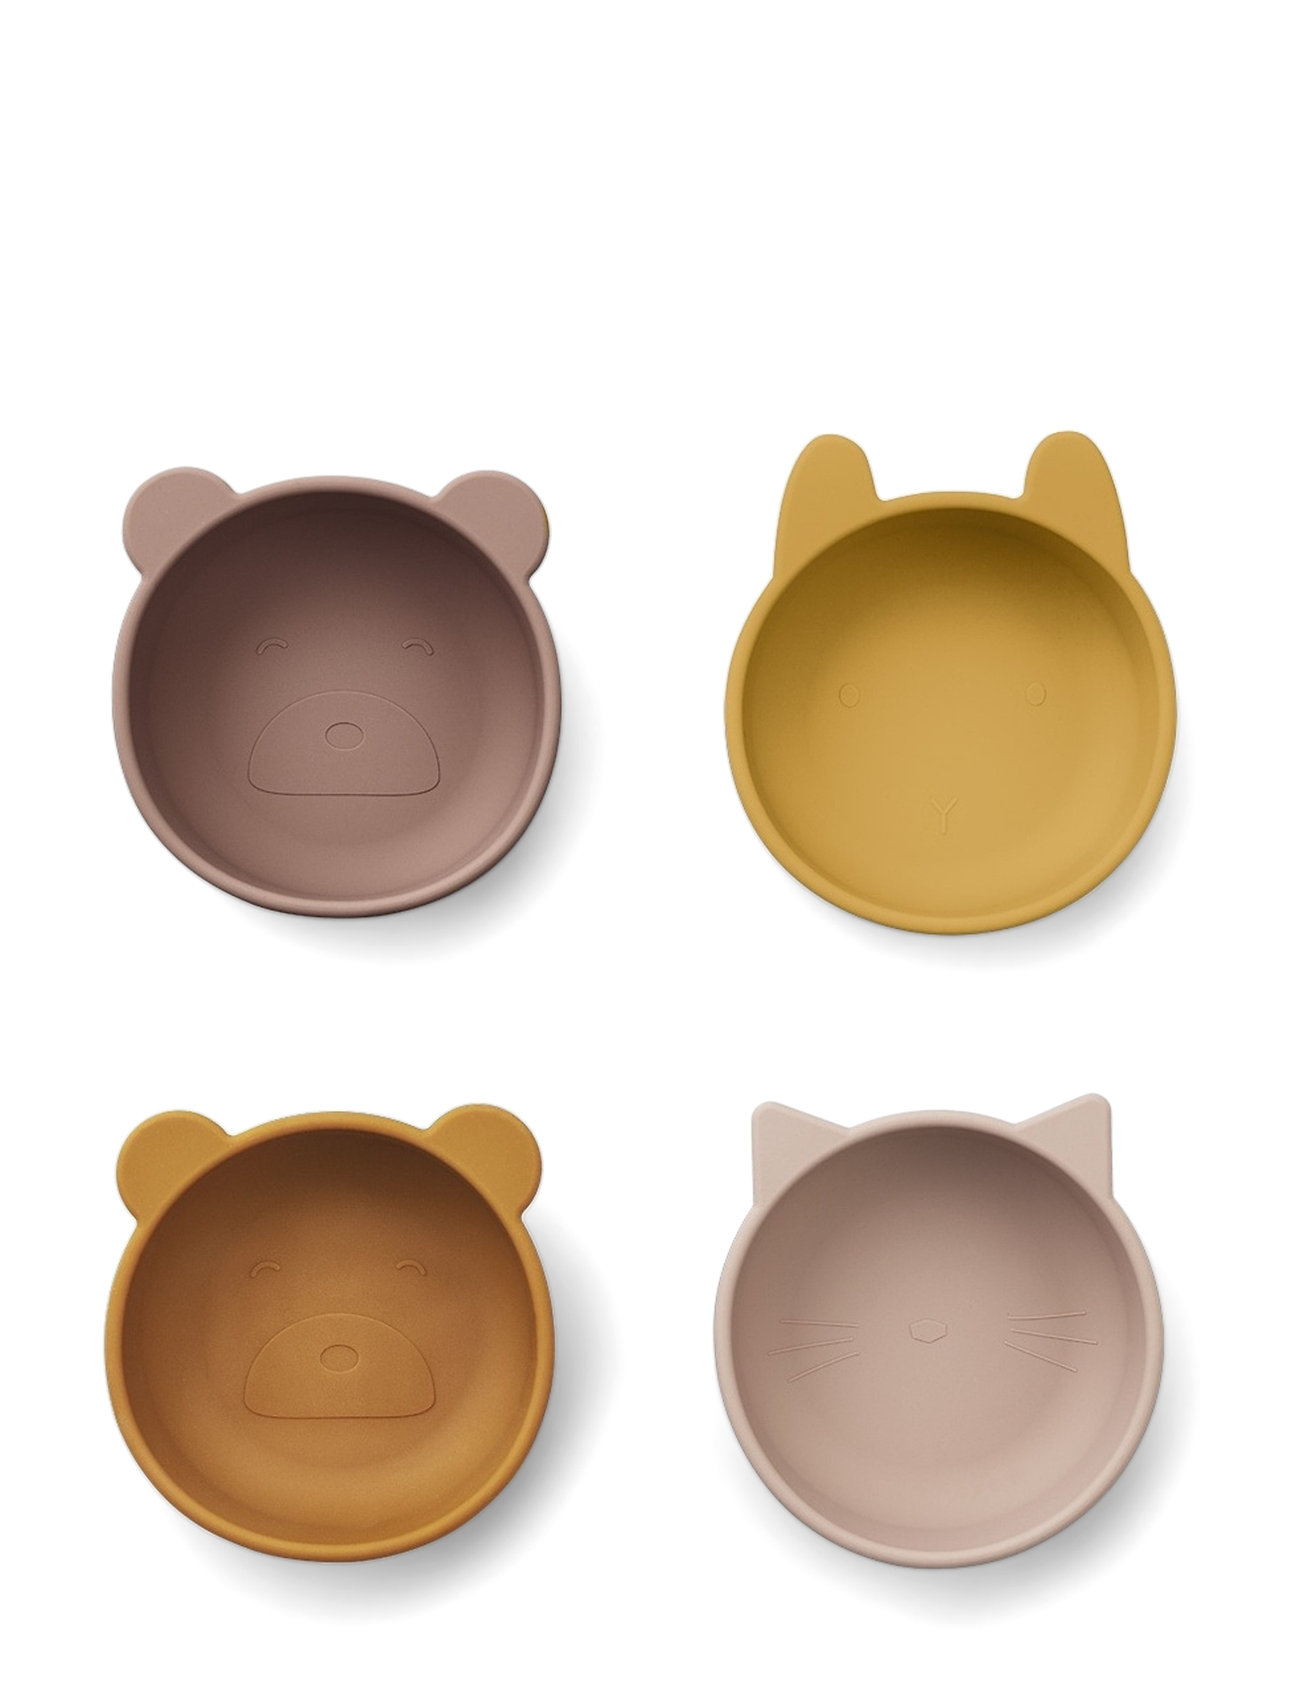 Liewood Iggy silicone bowls - 4 pack - ROSE MIX